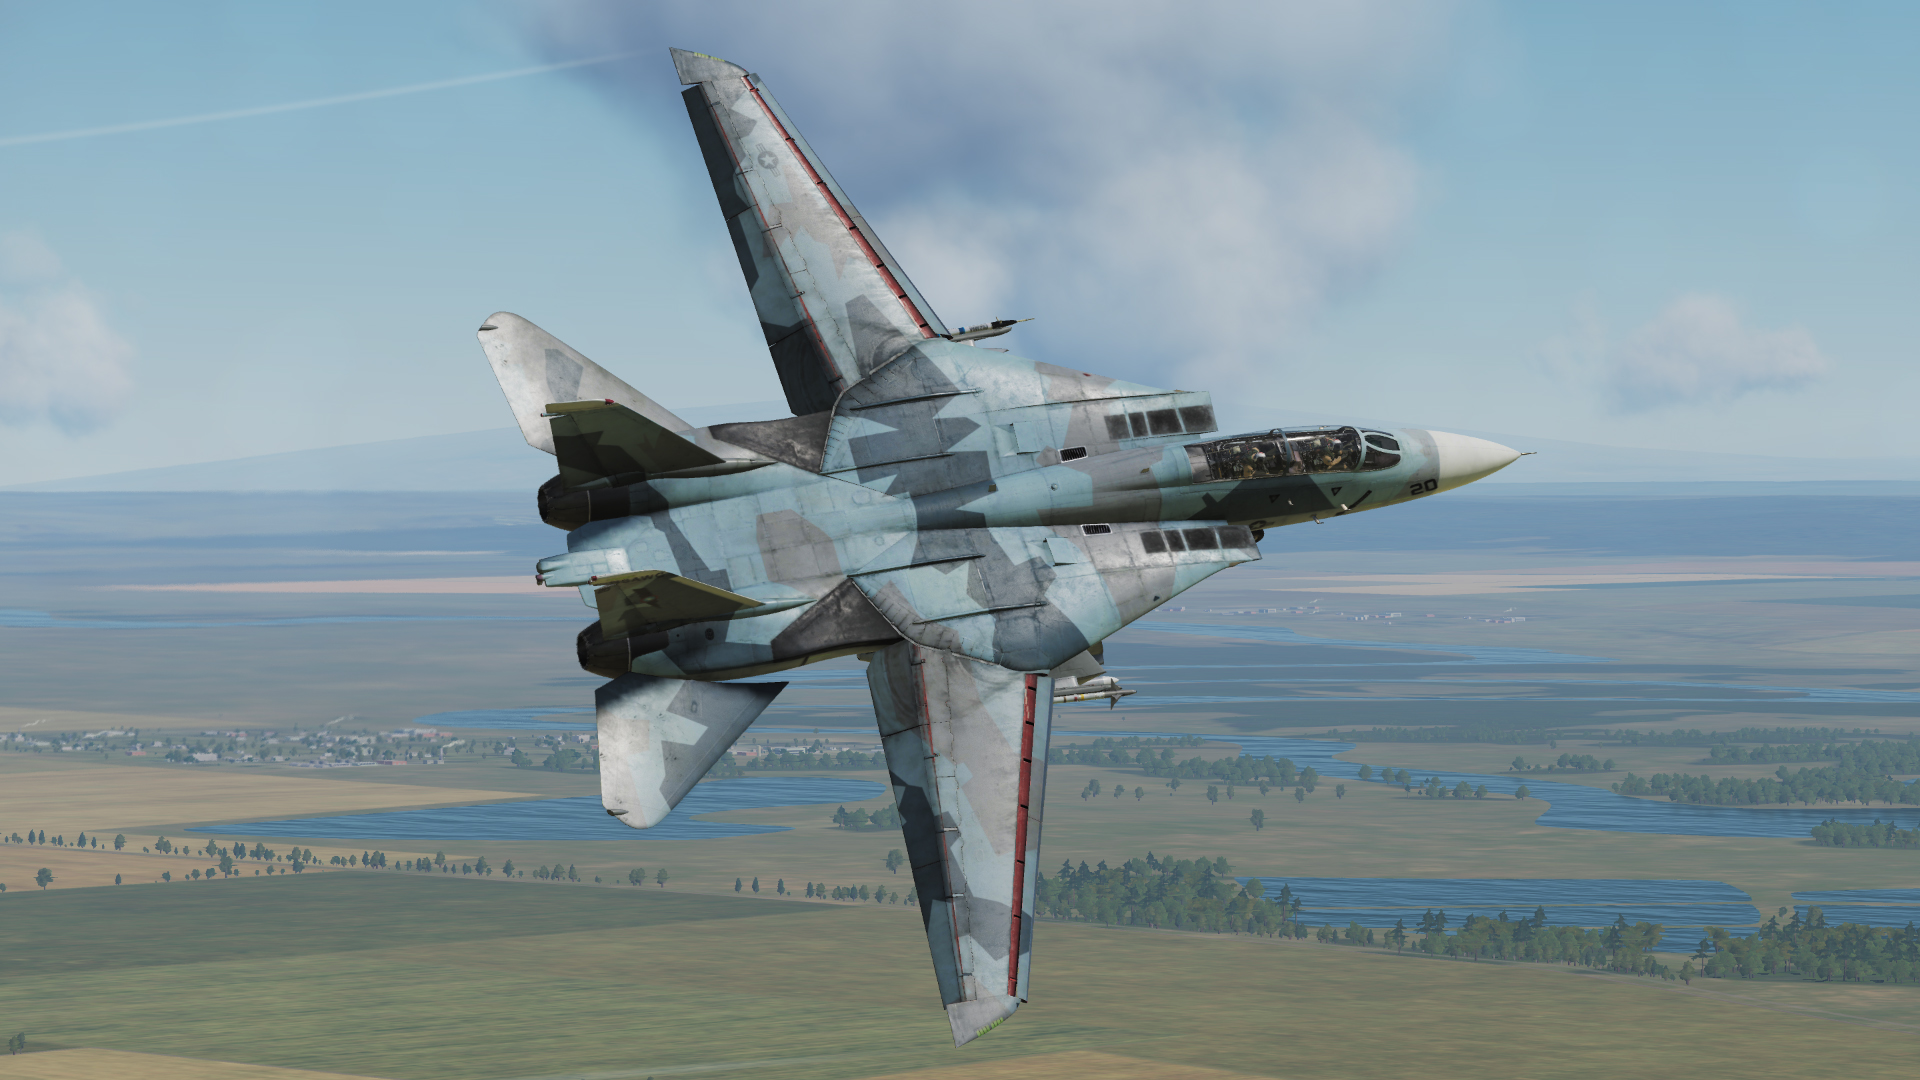 F-14B - NSAWC Blue splinter #20